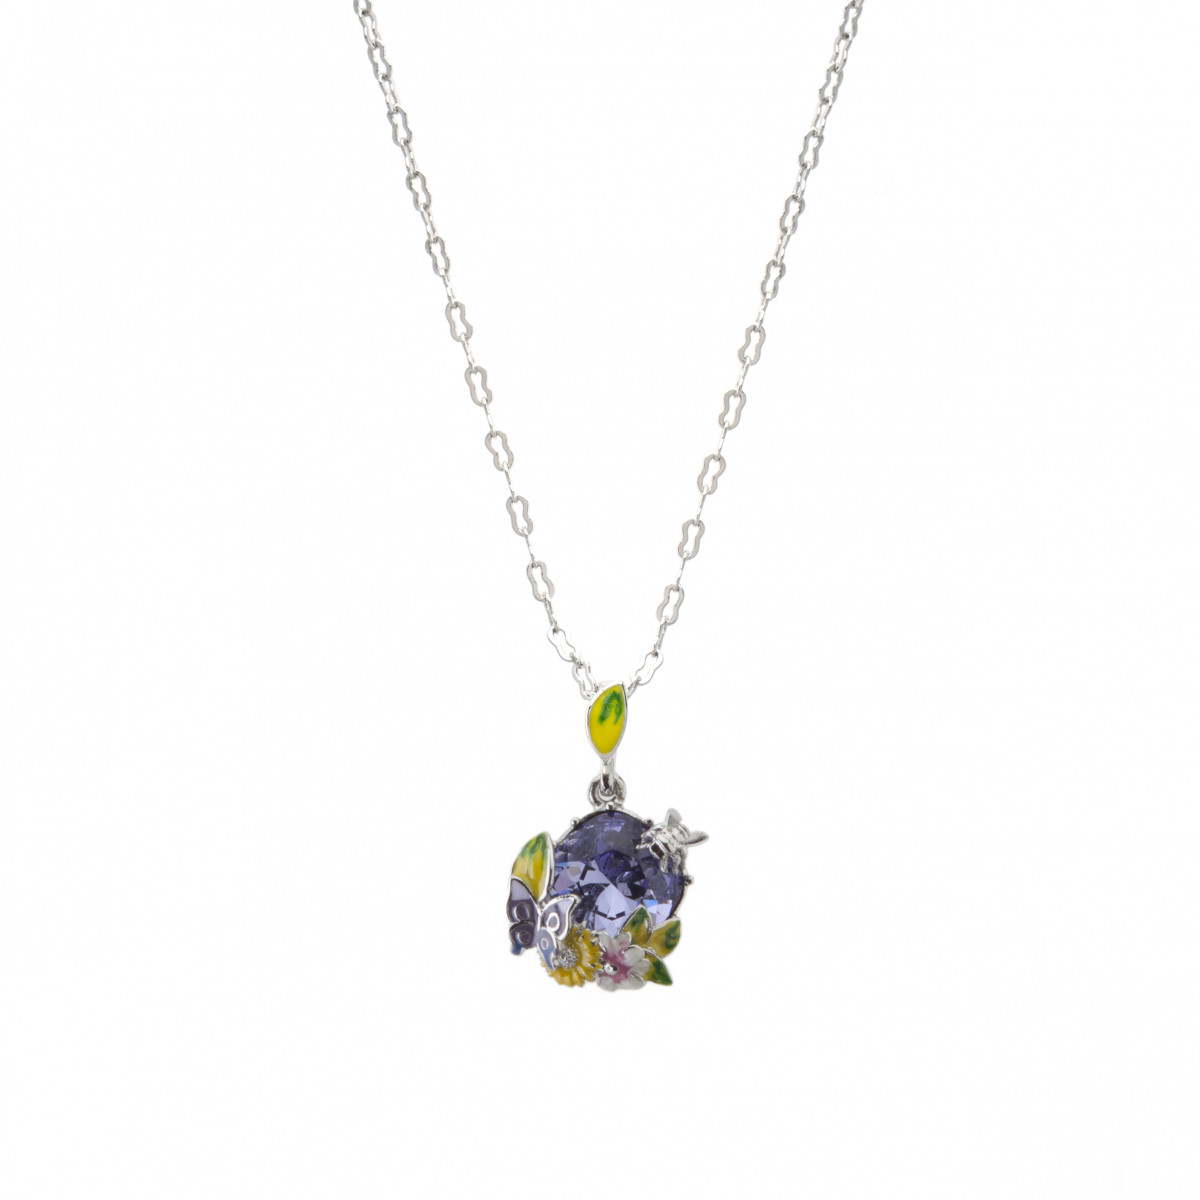 Scenes of Nature Pendant - Violet